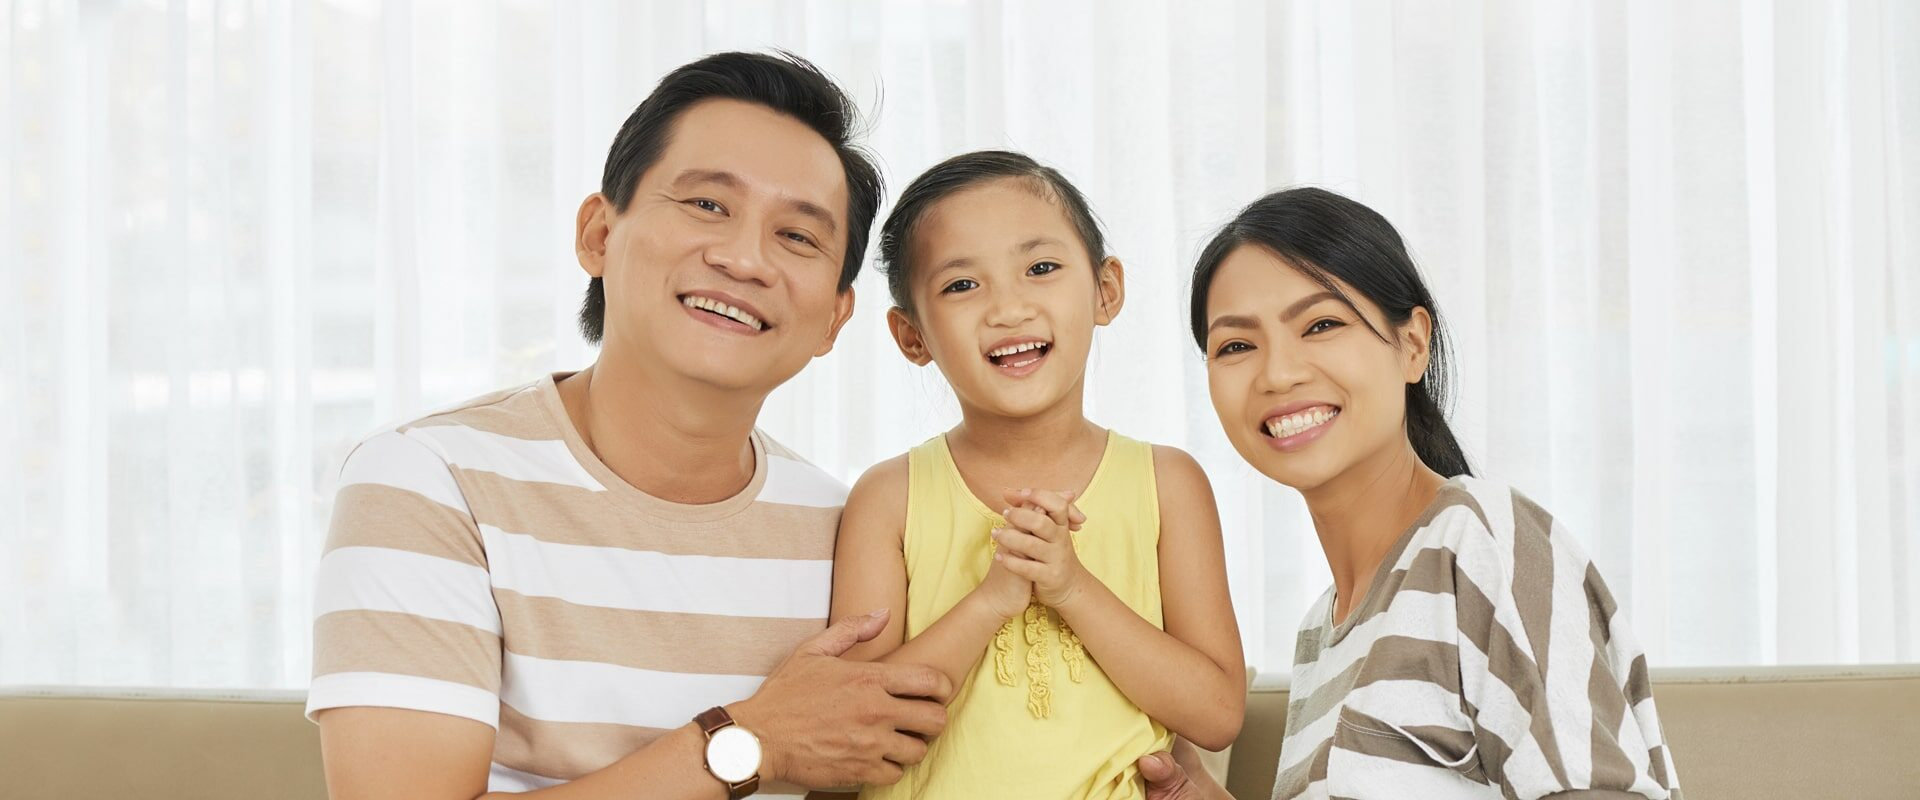 We offer services for the whole family!